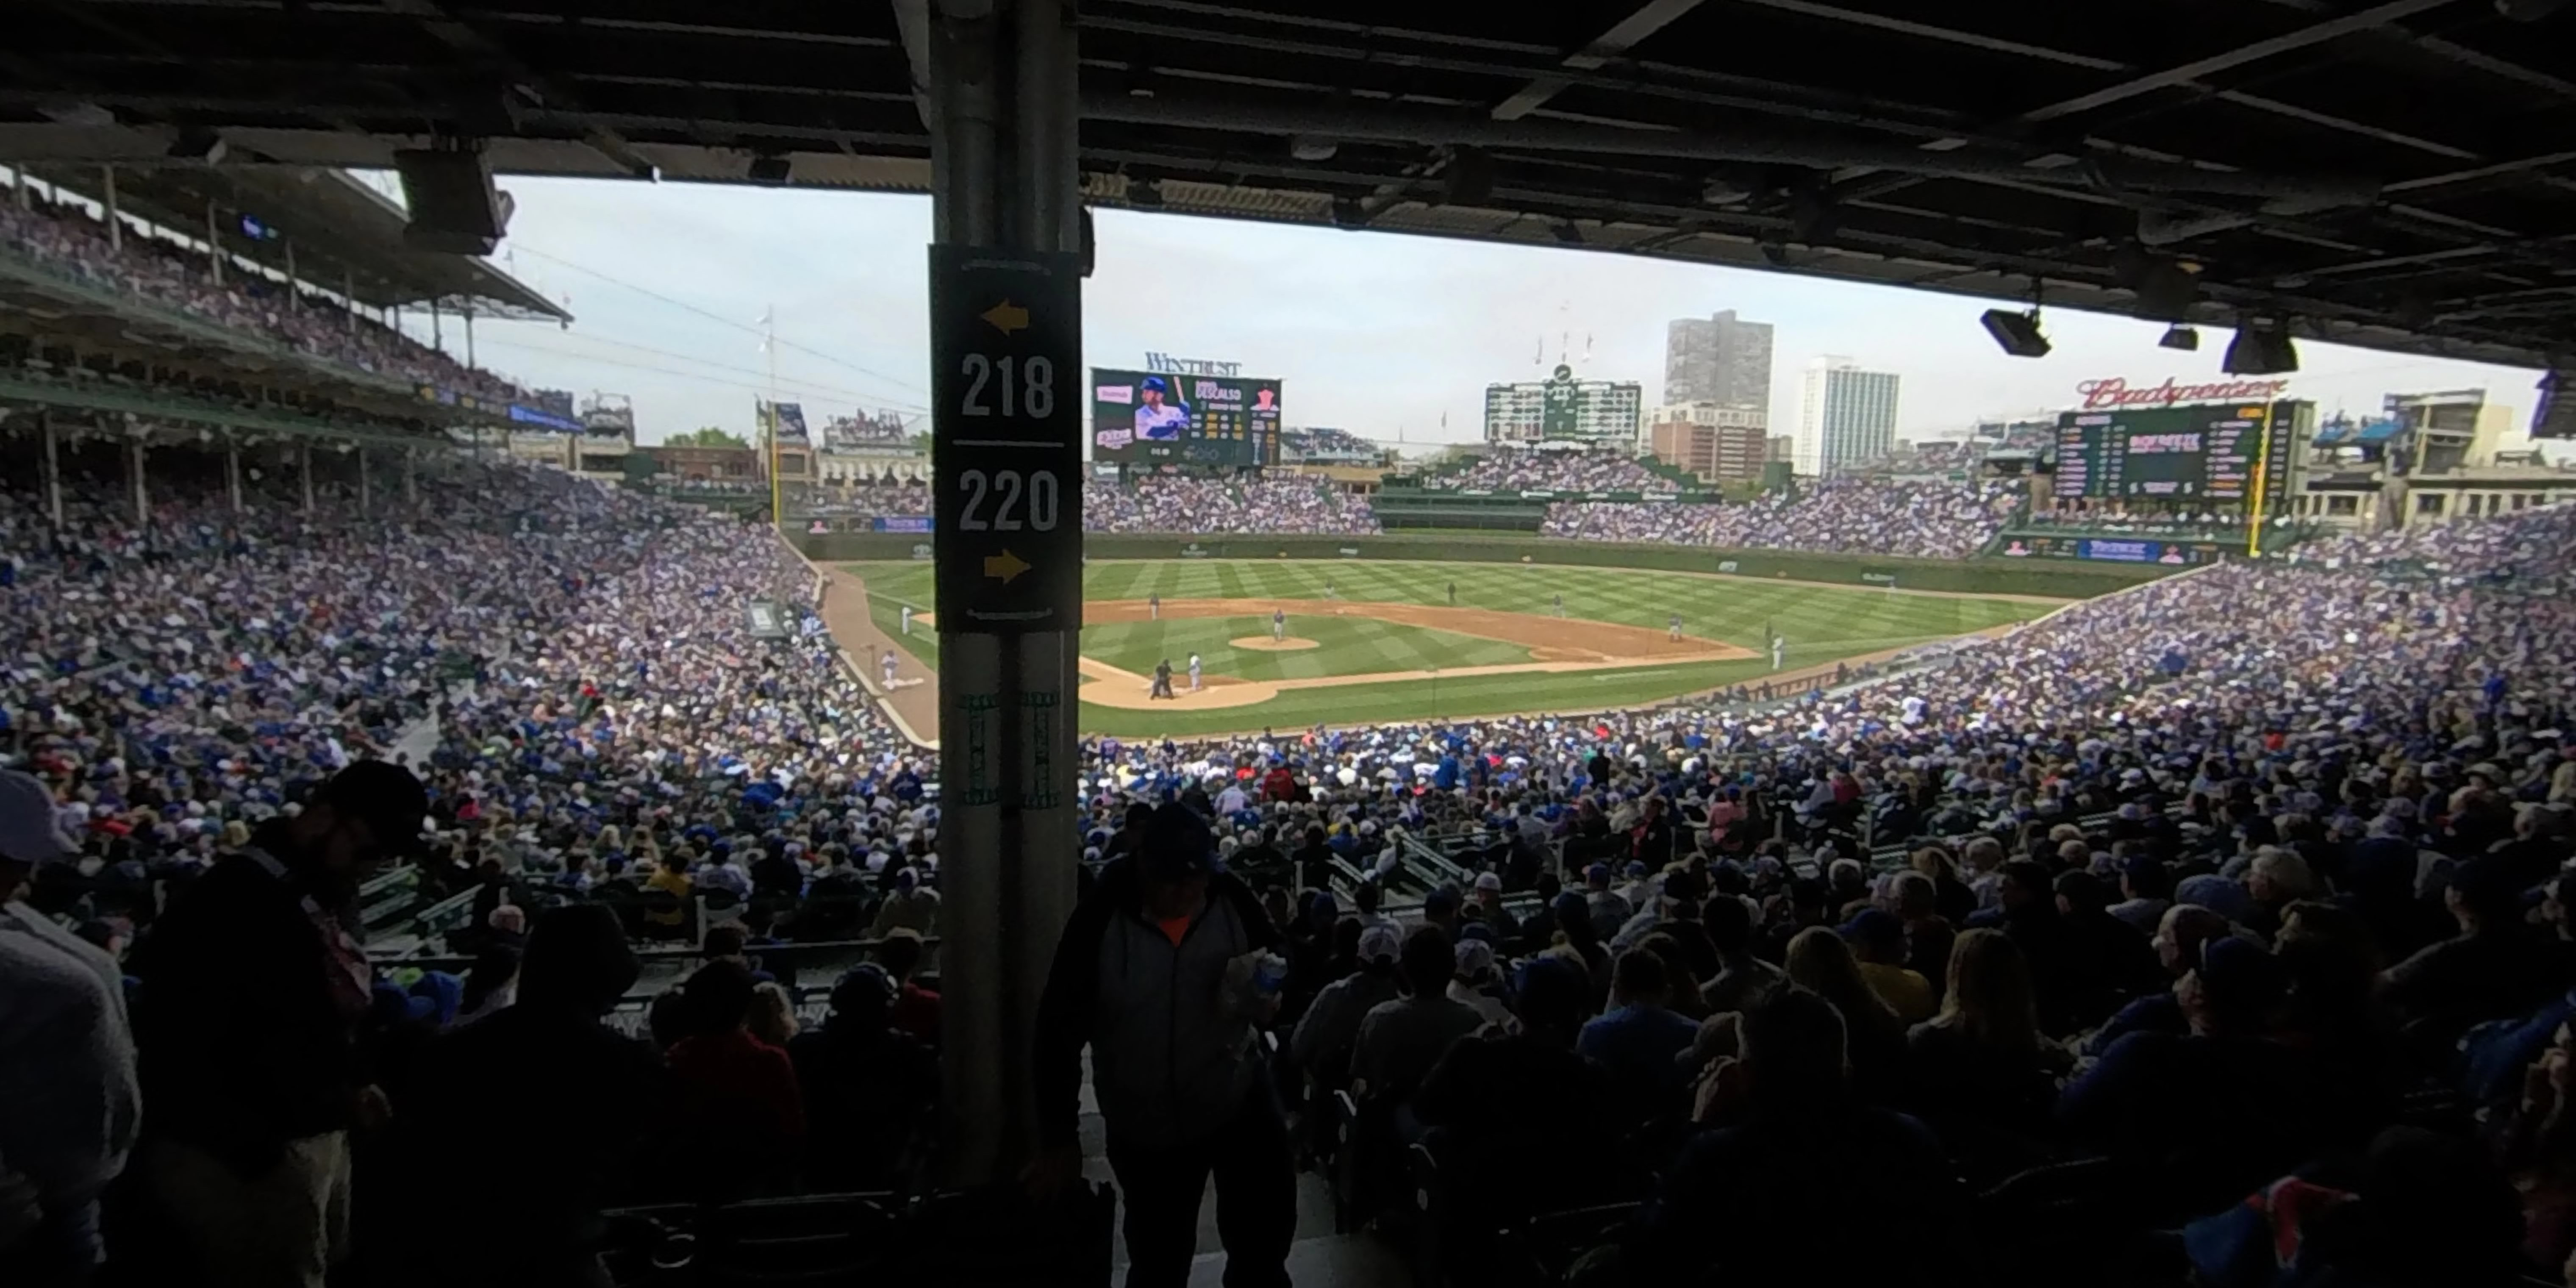 360° Photo From Wrigley Field Section 220